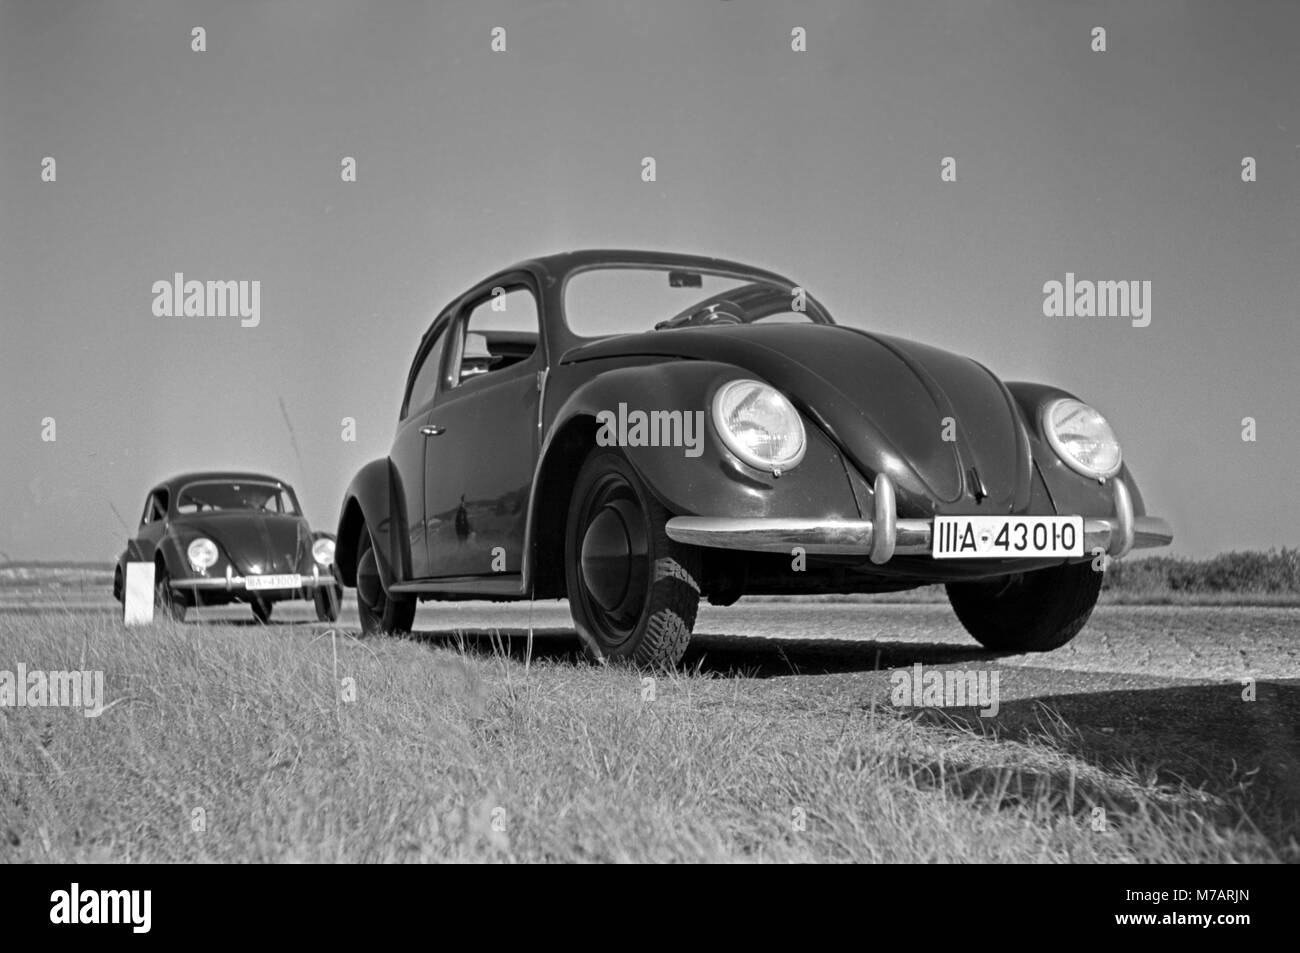 Two models of the Volkswagen beetle, or KdF car, with open and closed roof near the test track near Wolfsburg, Germany - Stock Image